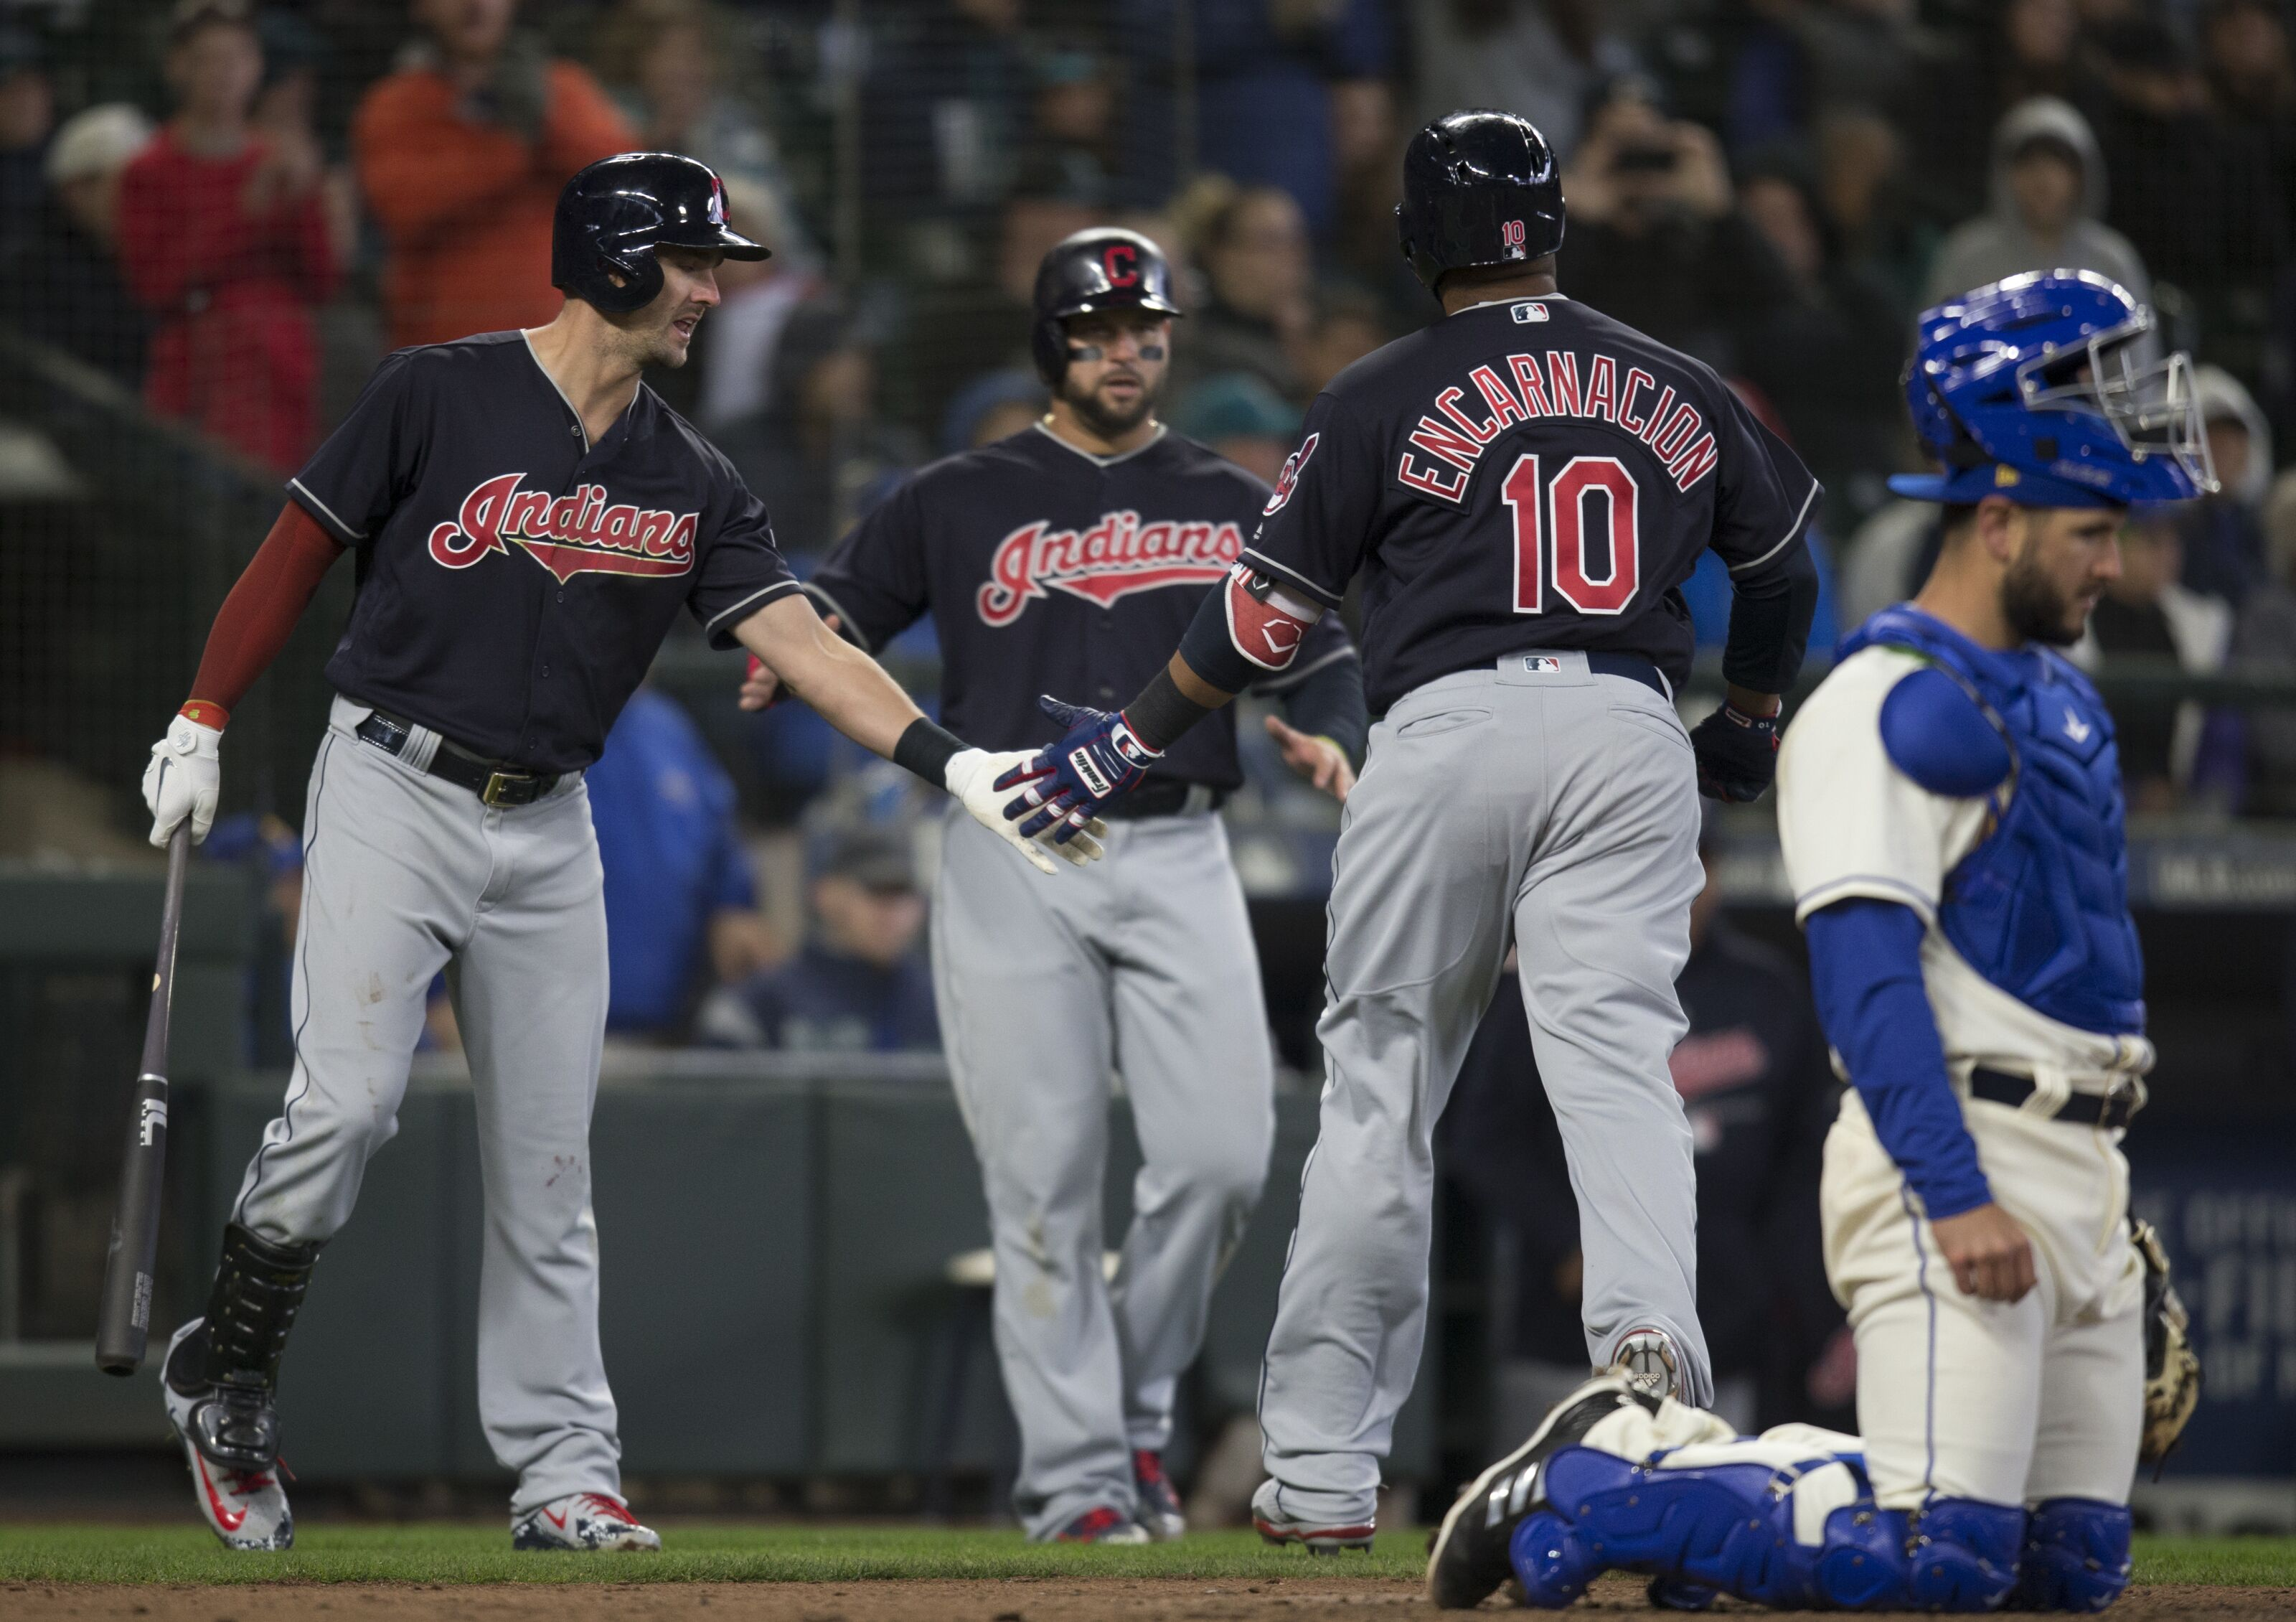 Cleveland Indians down to No. 10 overall in ESPN power ...